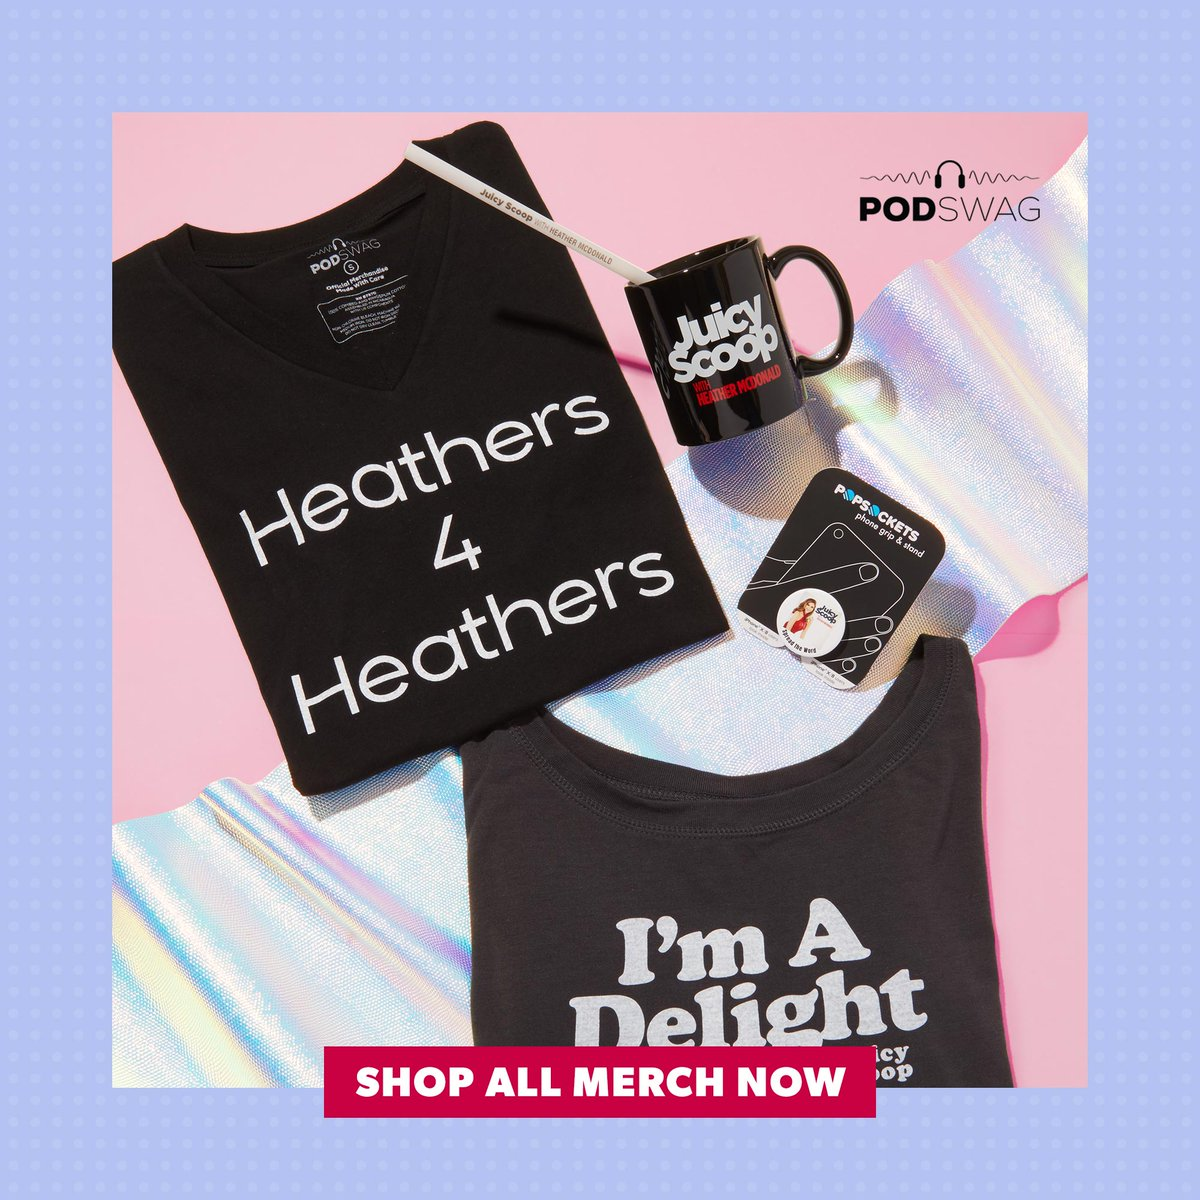 Here's the scoop. You can get new Juicy Scoop with @HeatherMcDonald merch over on @Podswag: podswag.com/collections/ju…